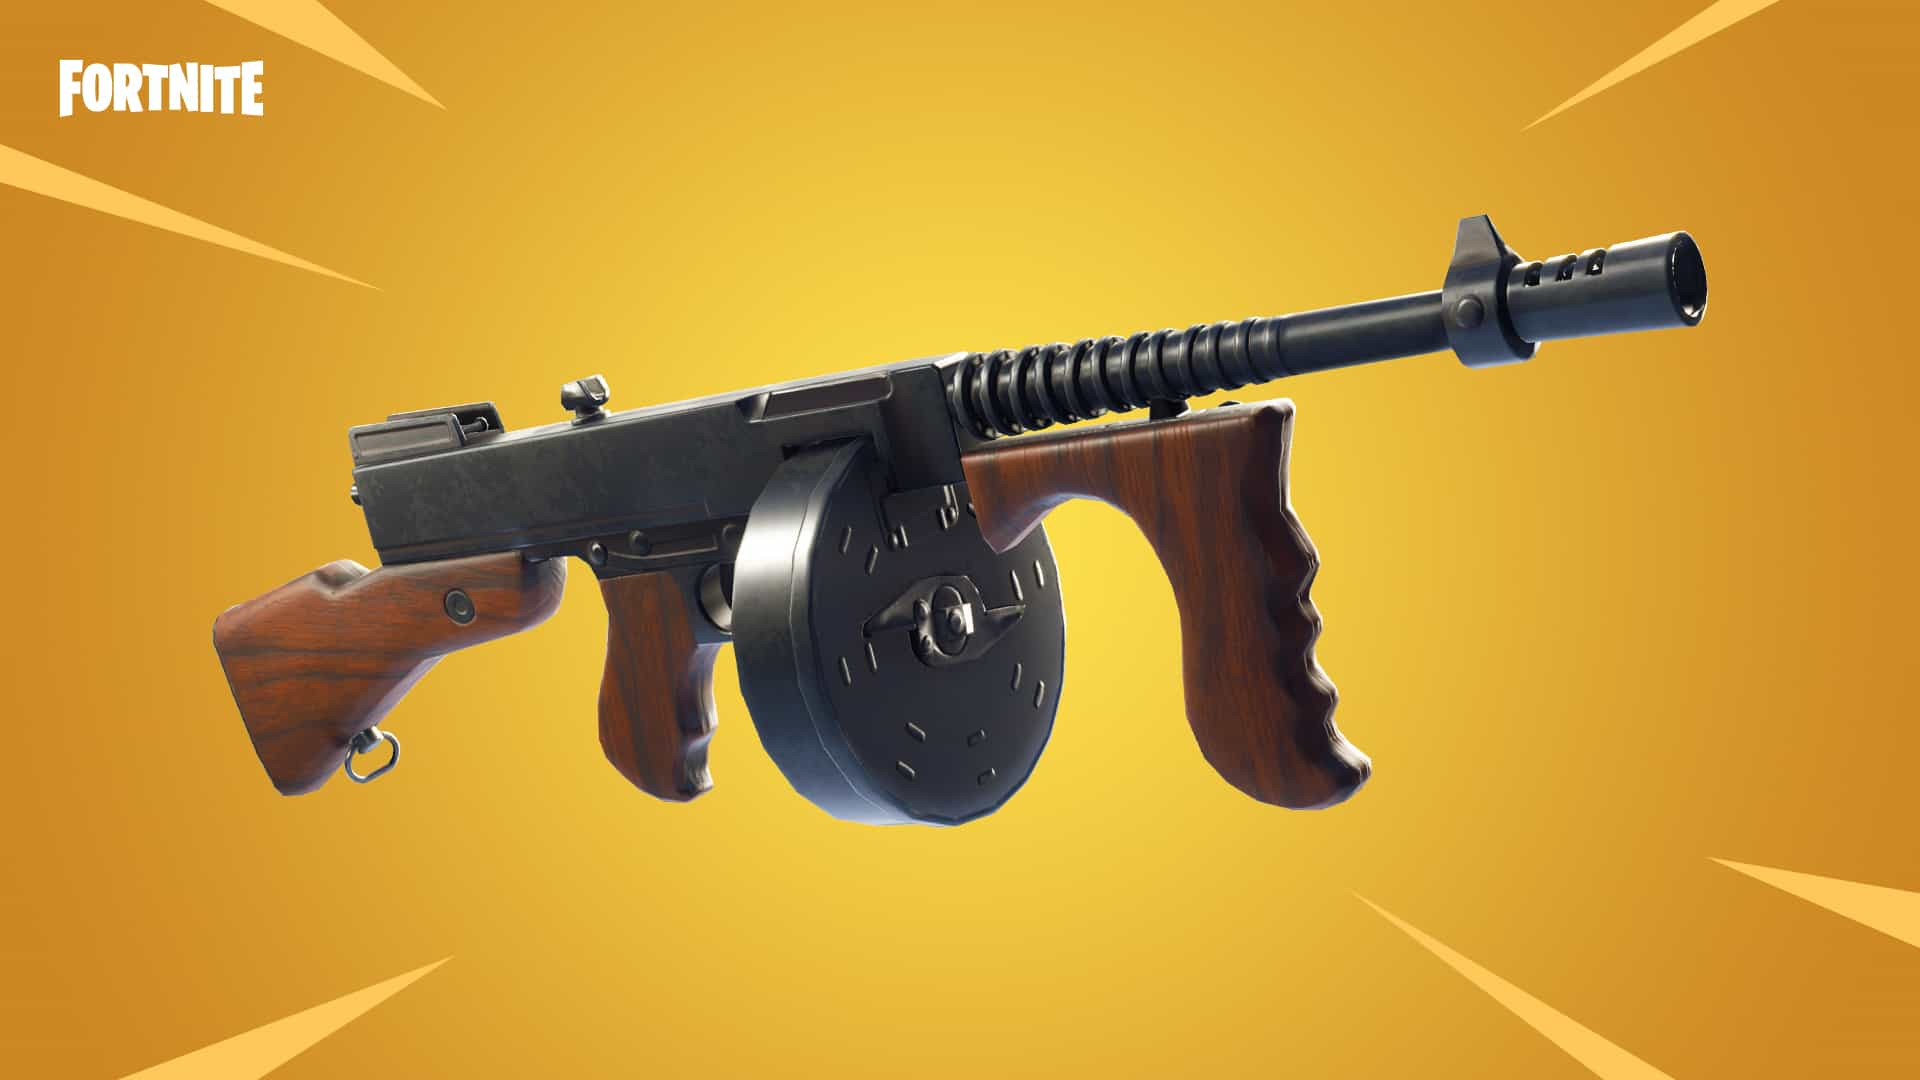 Fortnite takes us back to the 1920s with drum gun and new outfits